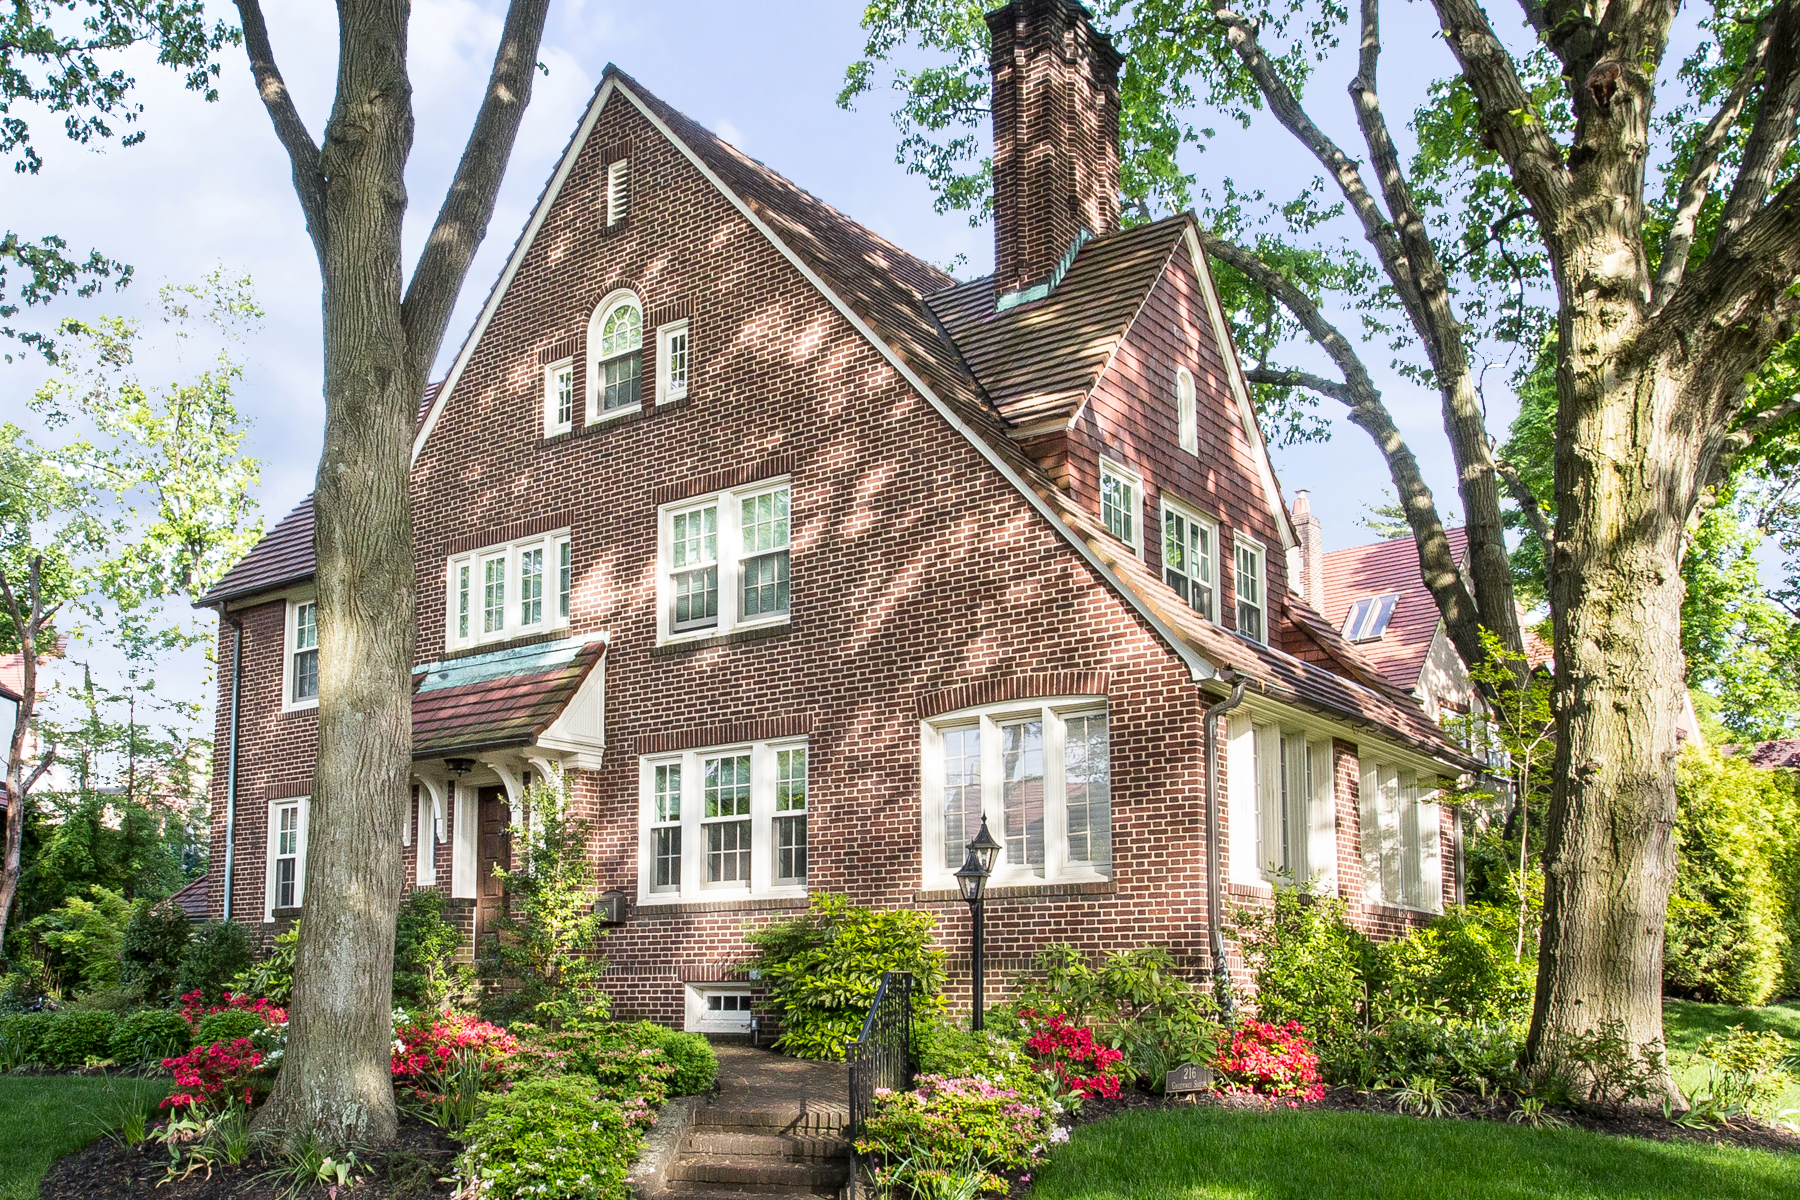 """Single Family Homes for Active at """"ARCHITECTURAL MASTERPIECE"""" 216 Greenway South, Forest Hills Gardens, Forest Hills, New York 11375 United States"""